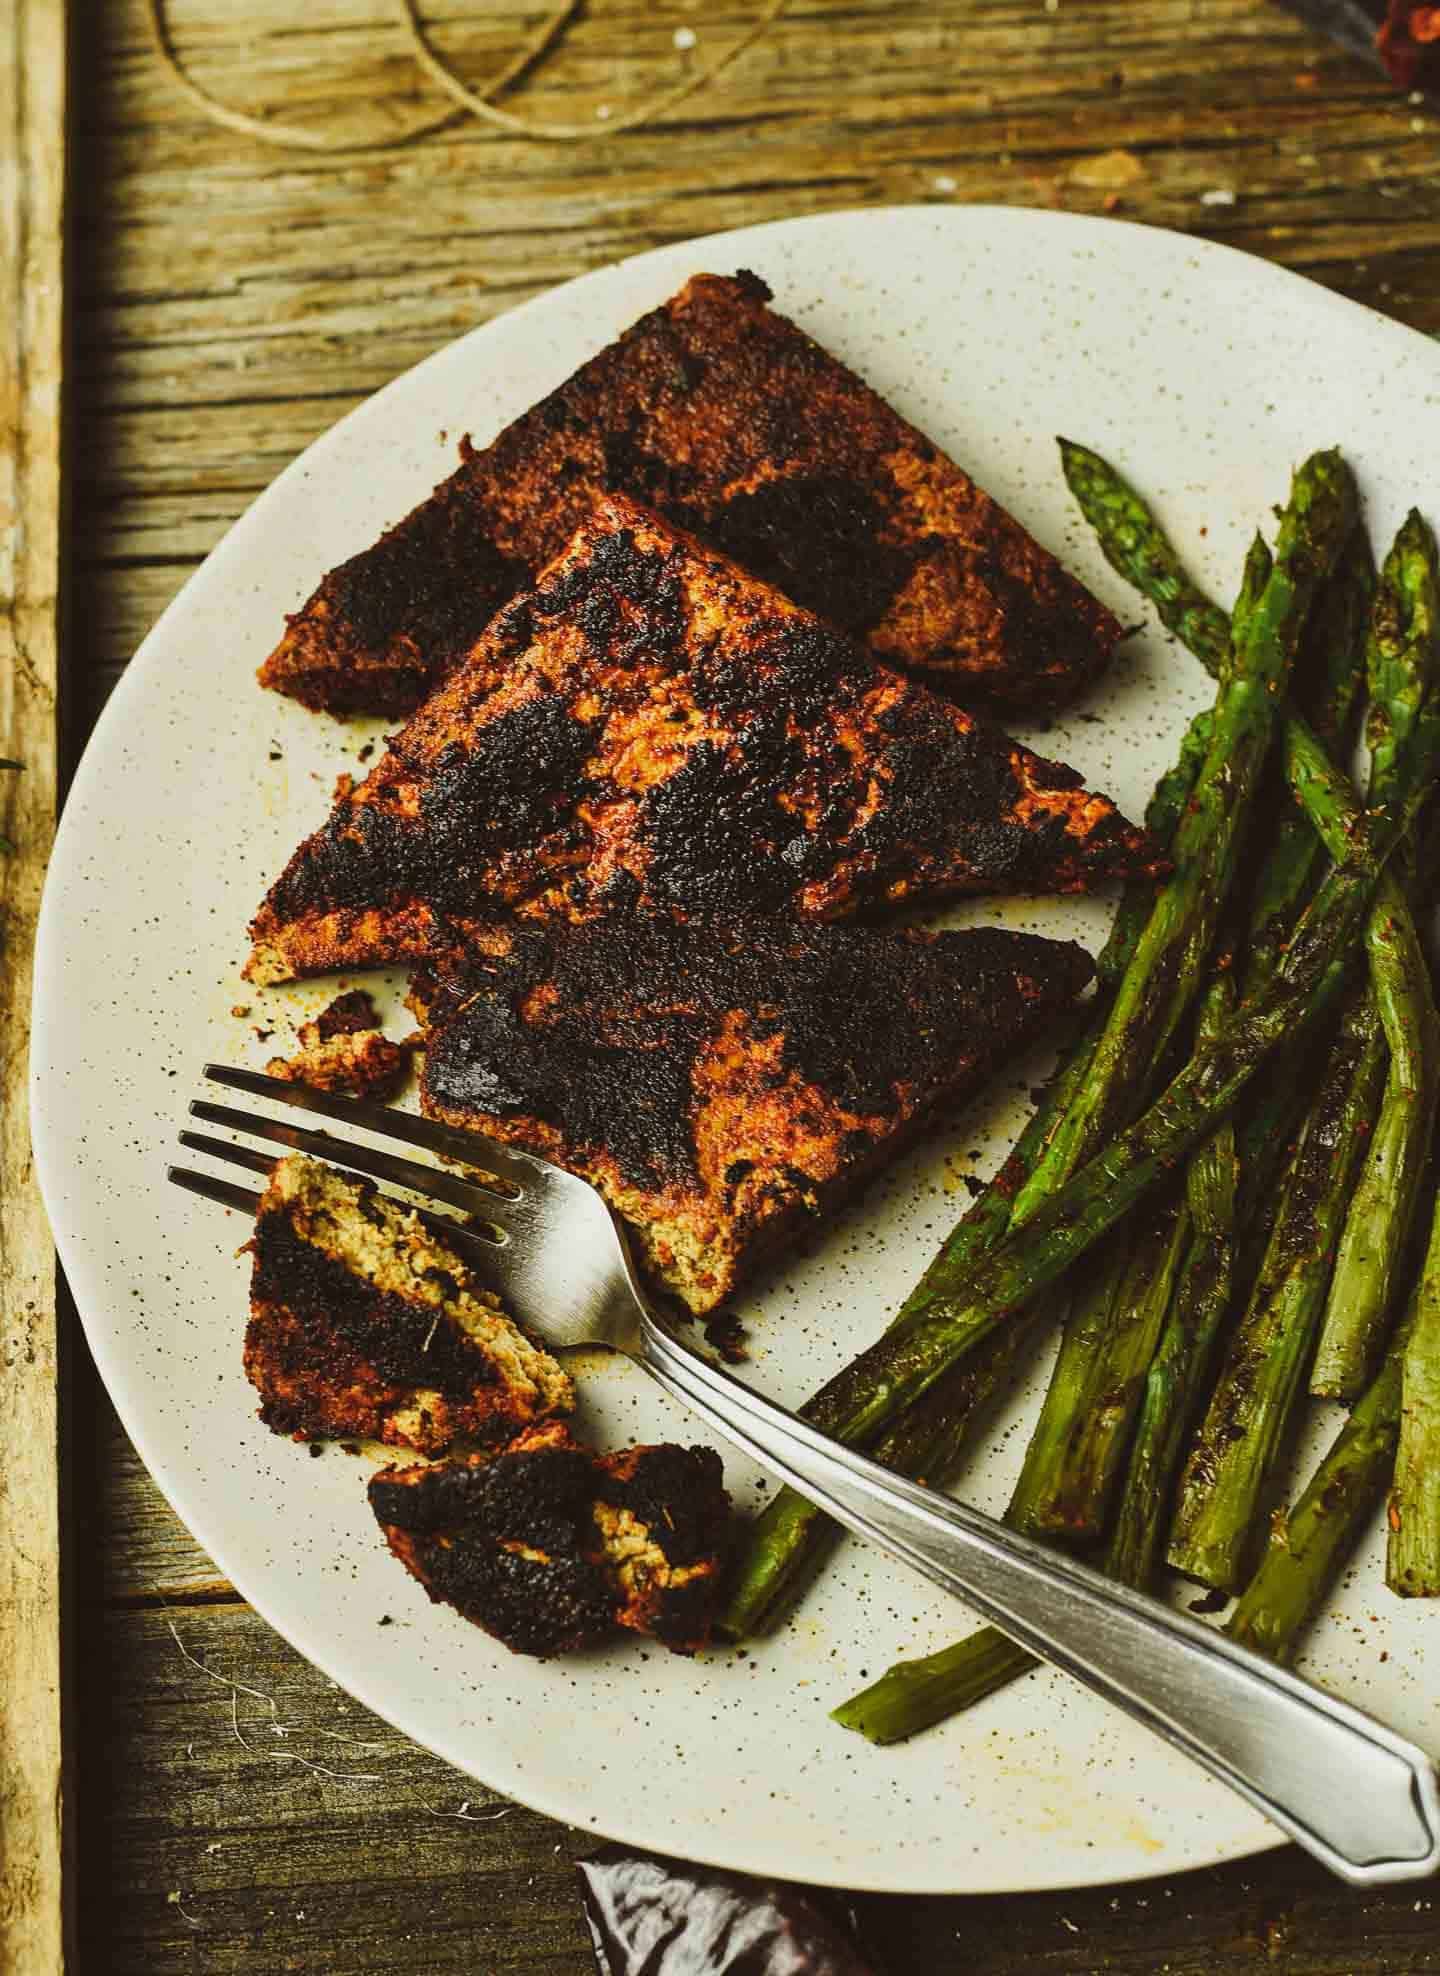 Tofu steaks on plate with asparagus.